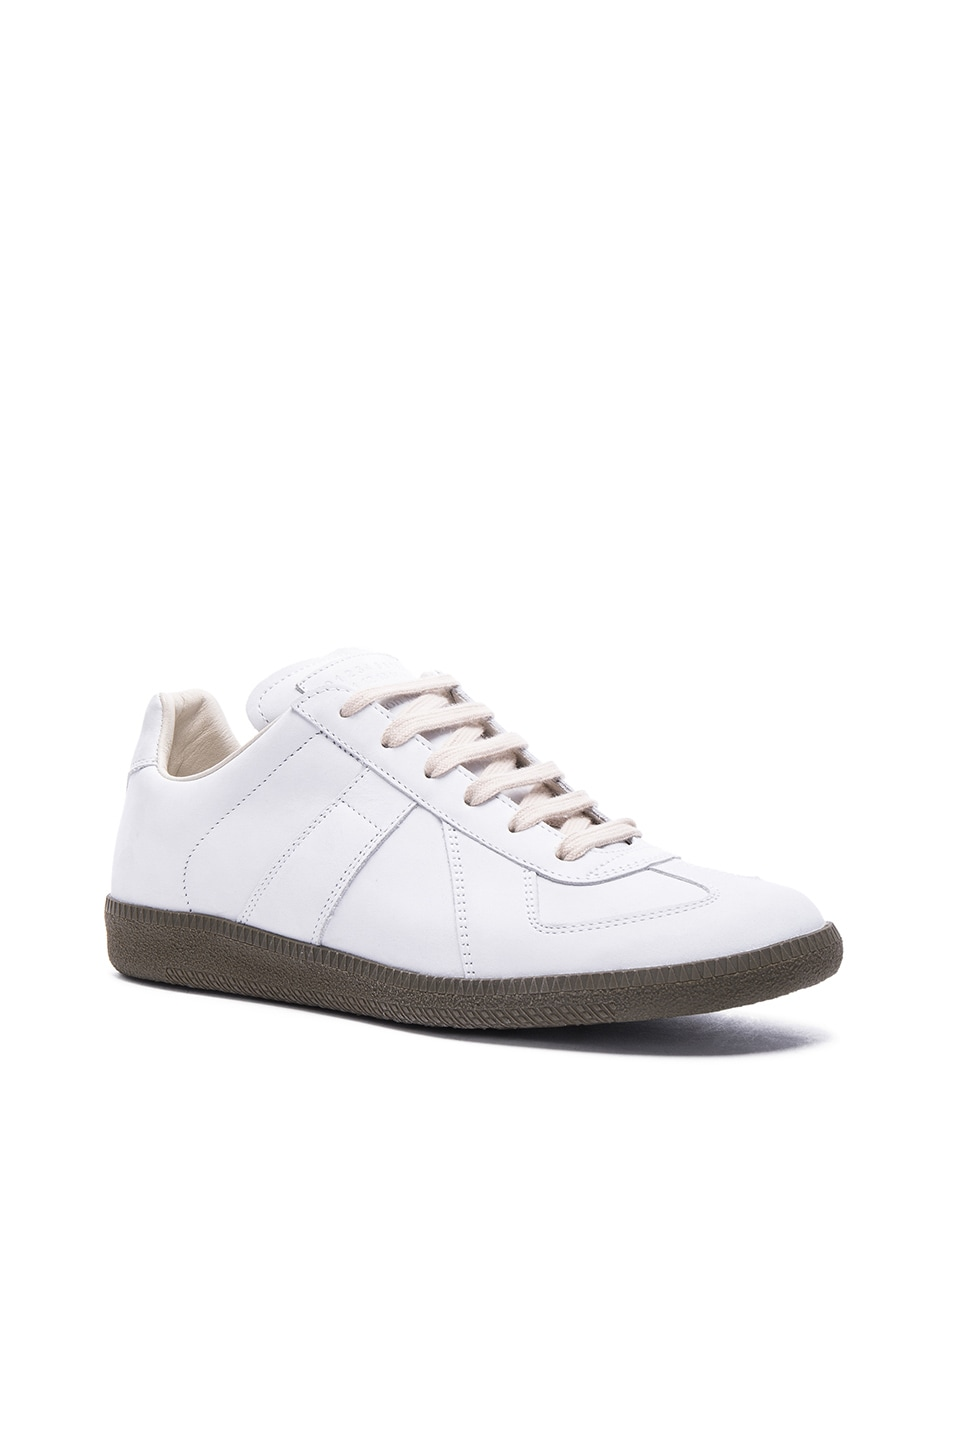 Image 1 of Maison Margiela Nubuck Replica Sneakers in White & Khaki